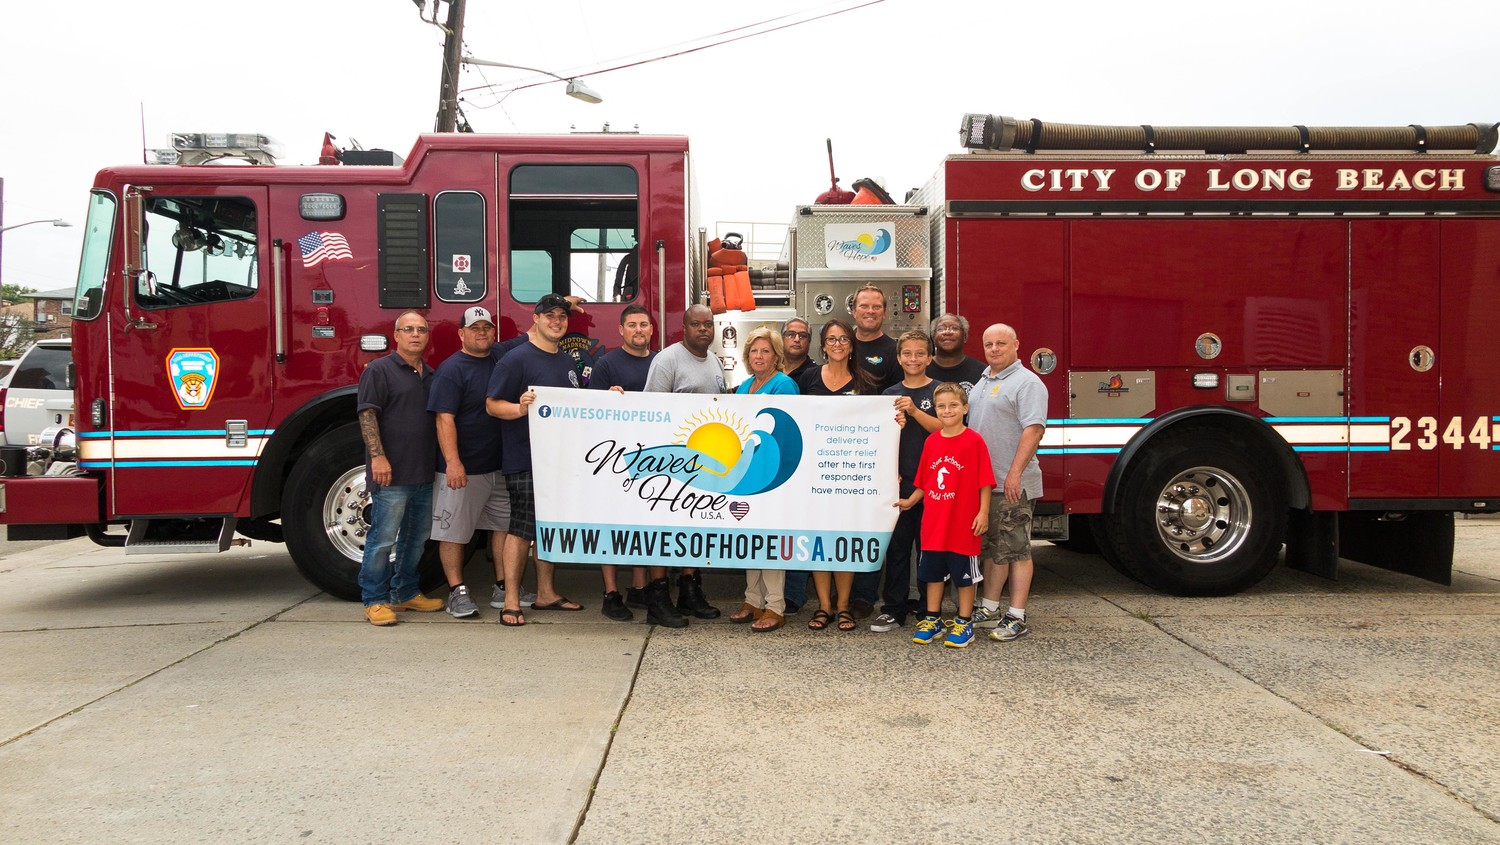 Members of the Long Beach Fire Department and the nonprofit organization Waves of Hope USA launched a relief effort to help Hurricane Florence victims. Above were Assistant Chief Rick DiGiacomo, left, Capt. Dave Rivera, Brandon Bowden, Zach Grunther, Assistant Chief Hadrick Ray, Joan Duffy, Al Rodriguez, Christina Kramer, Tim Kramer, Cooper Kramer, Captain Herman Prophet, Chase Kramer and Chief Joe Miller.